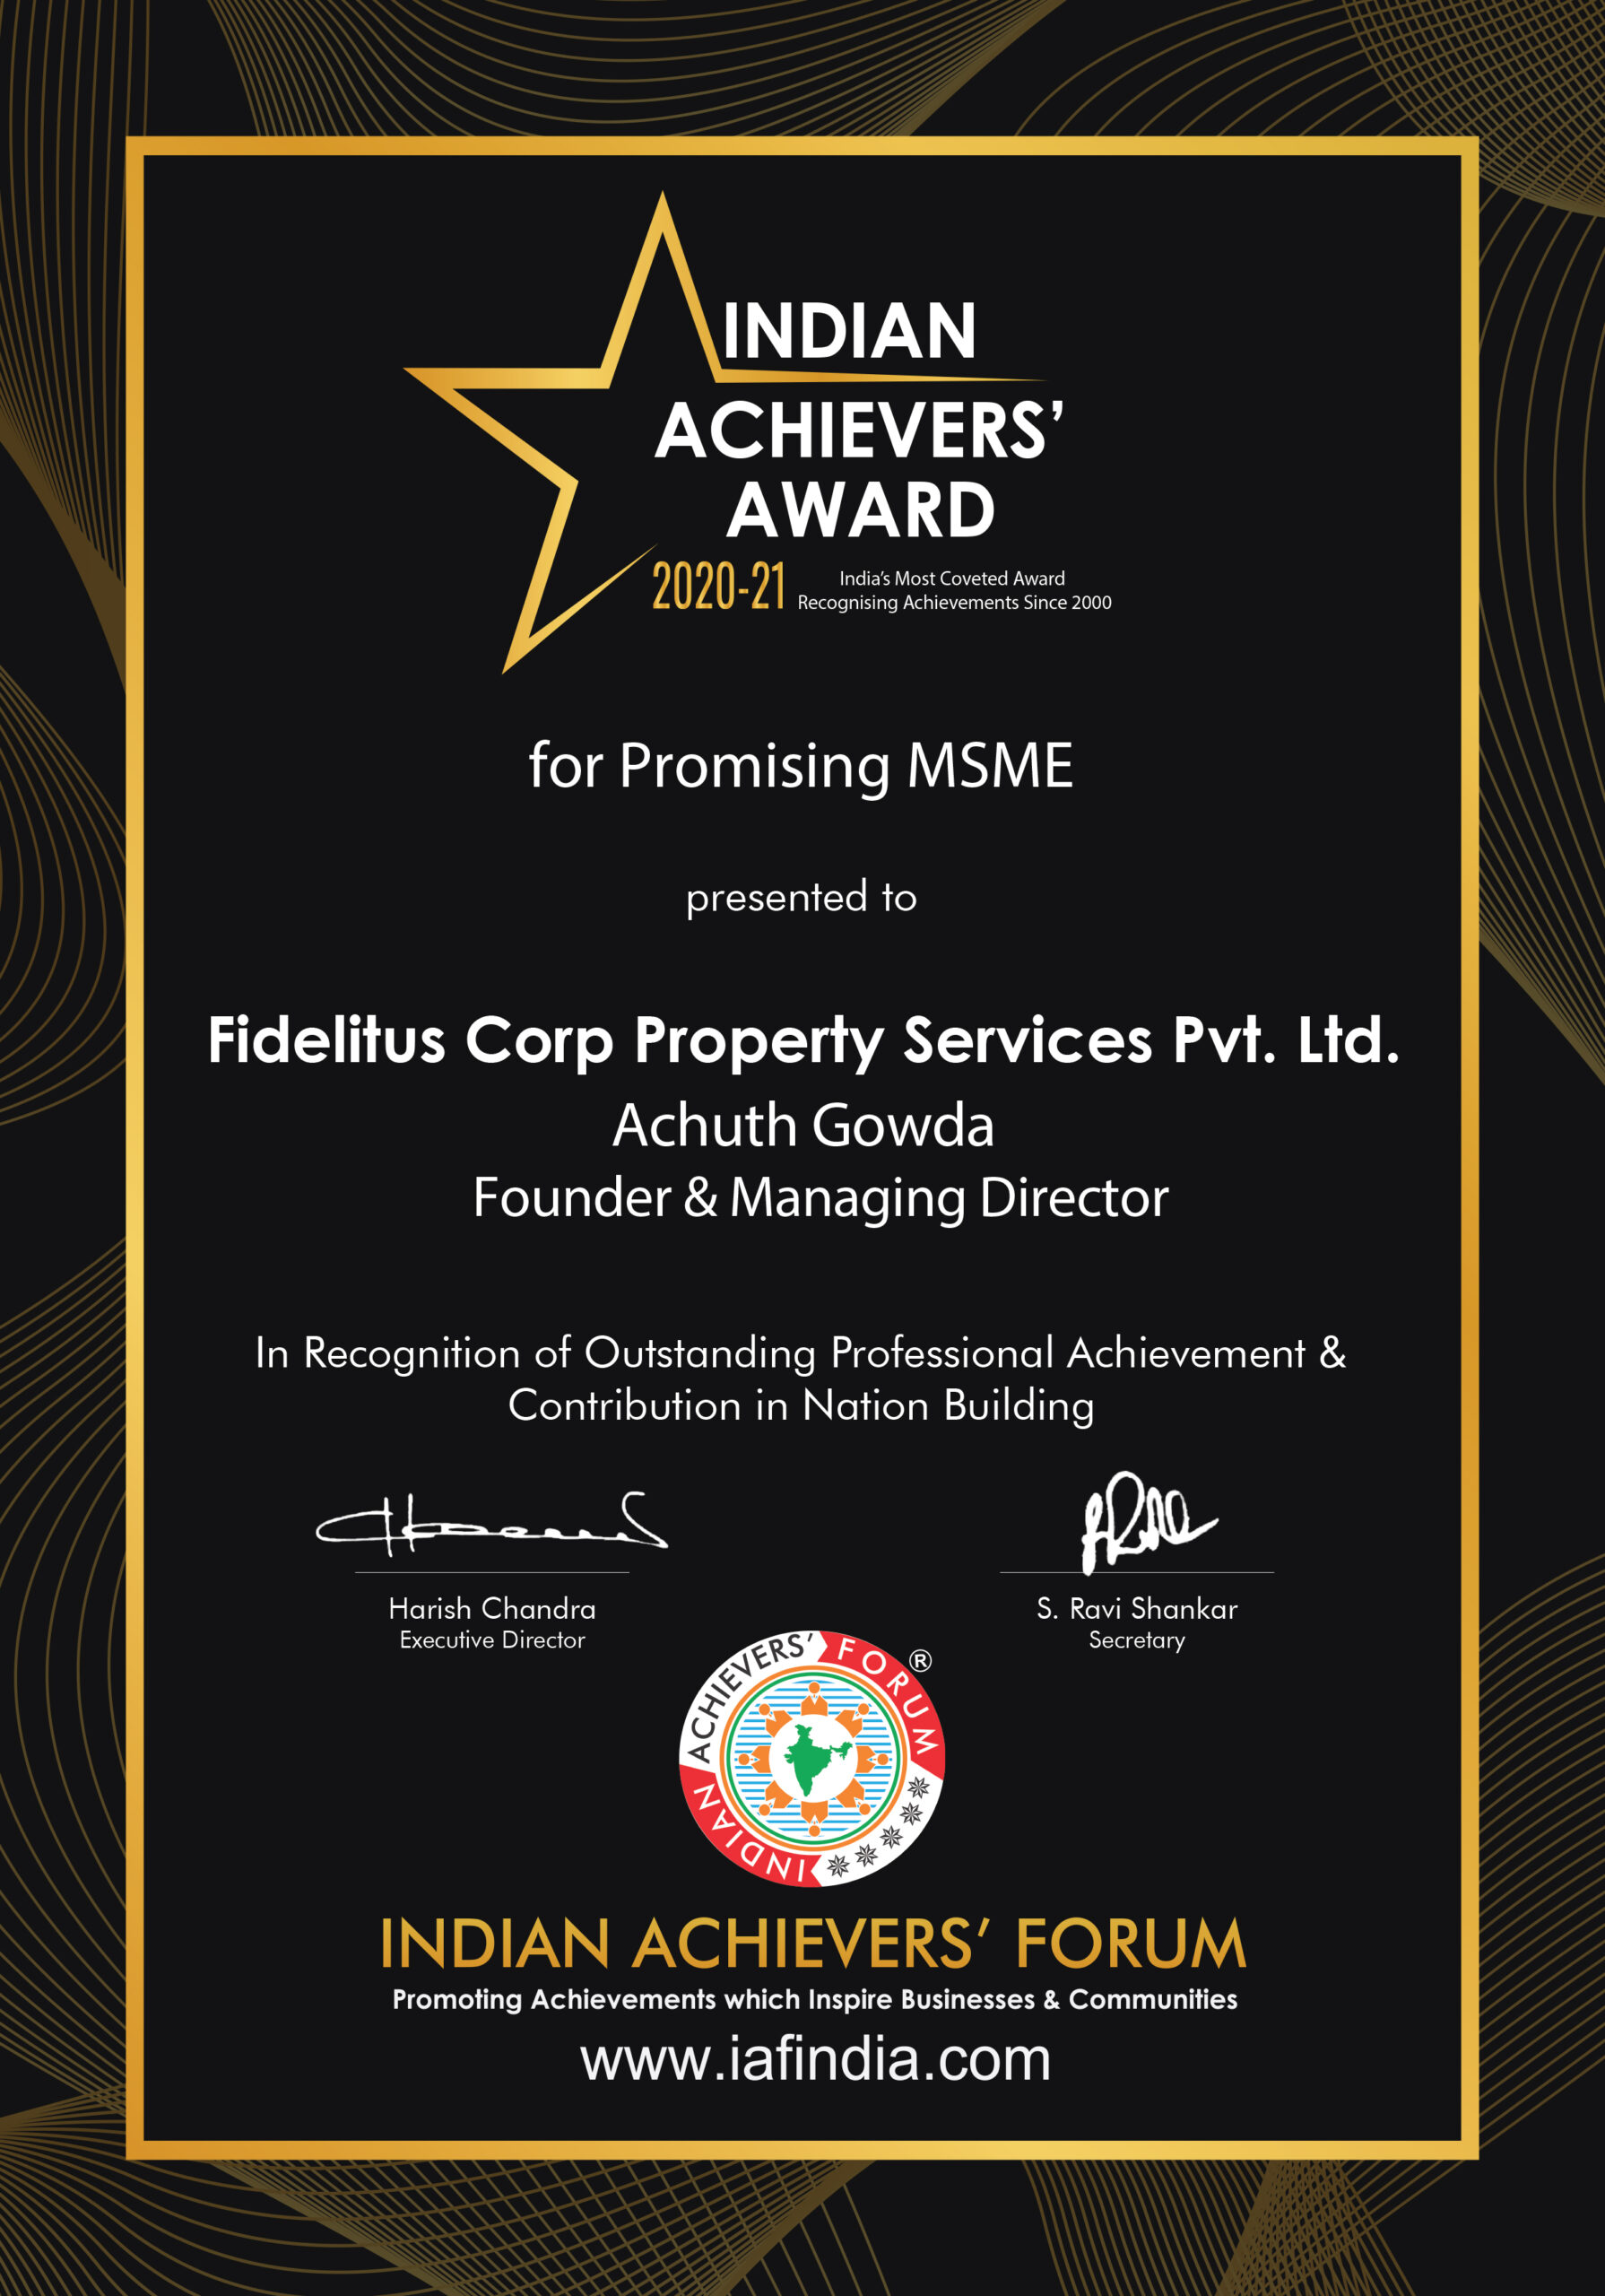 Indian Achievers' Forum Award 2020-21